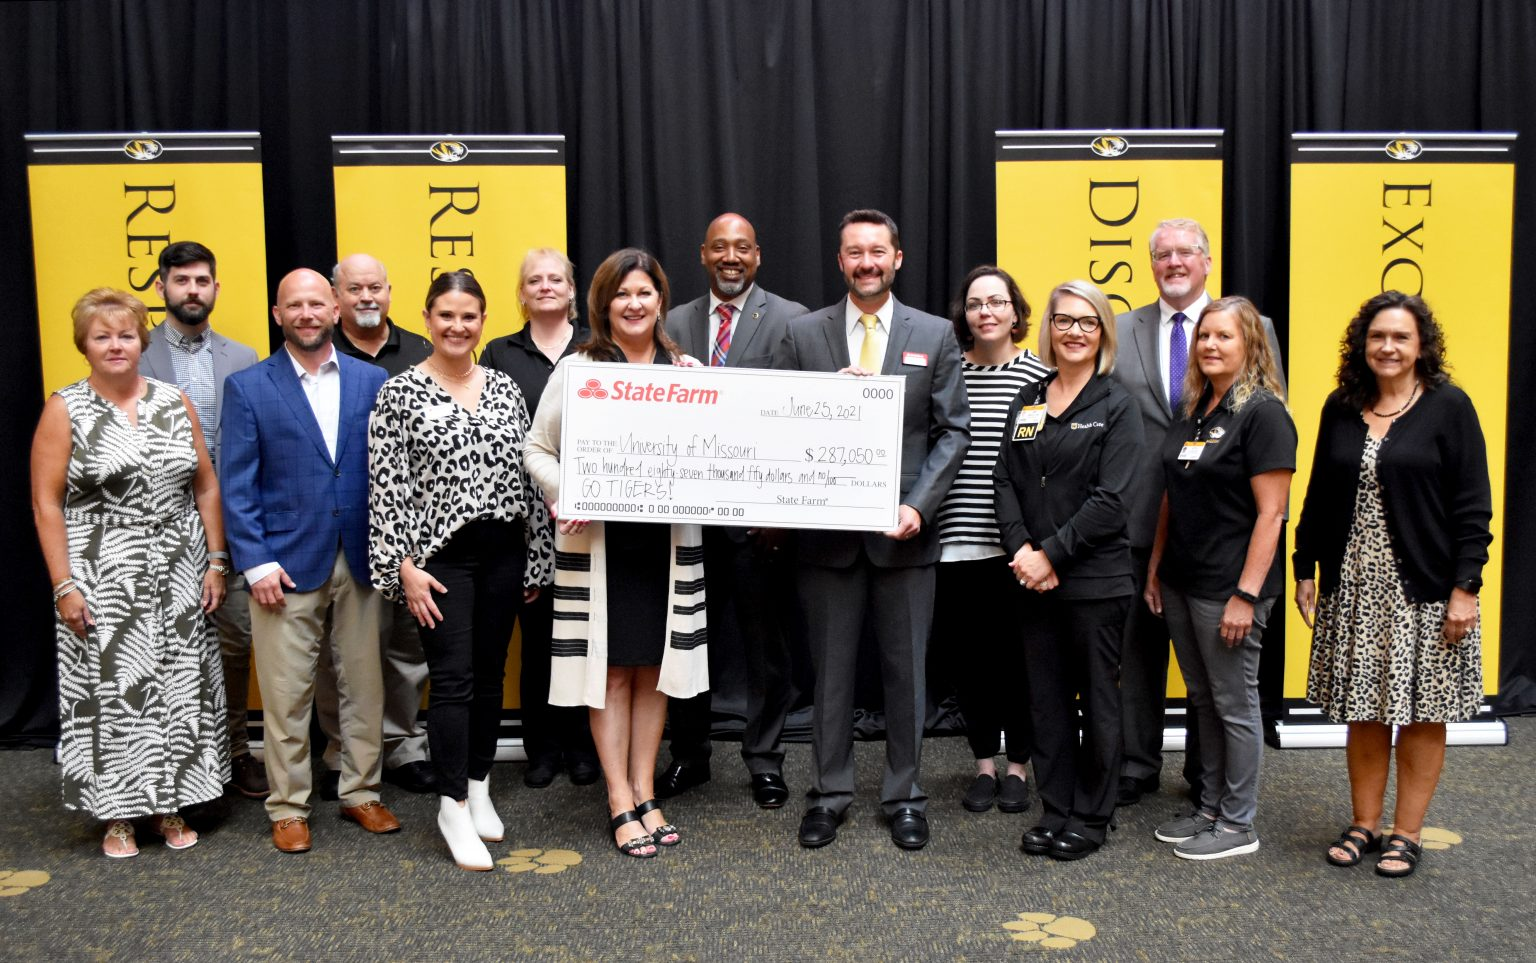 State Farm representatives presented a $287,050 gift to the University of Missouri for safety and financial wellness programs. See story for full caption.